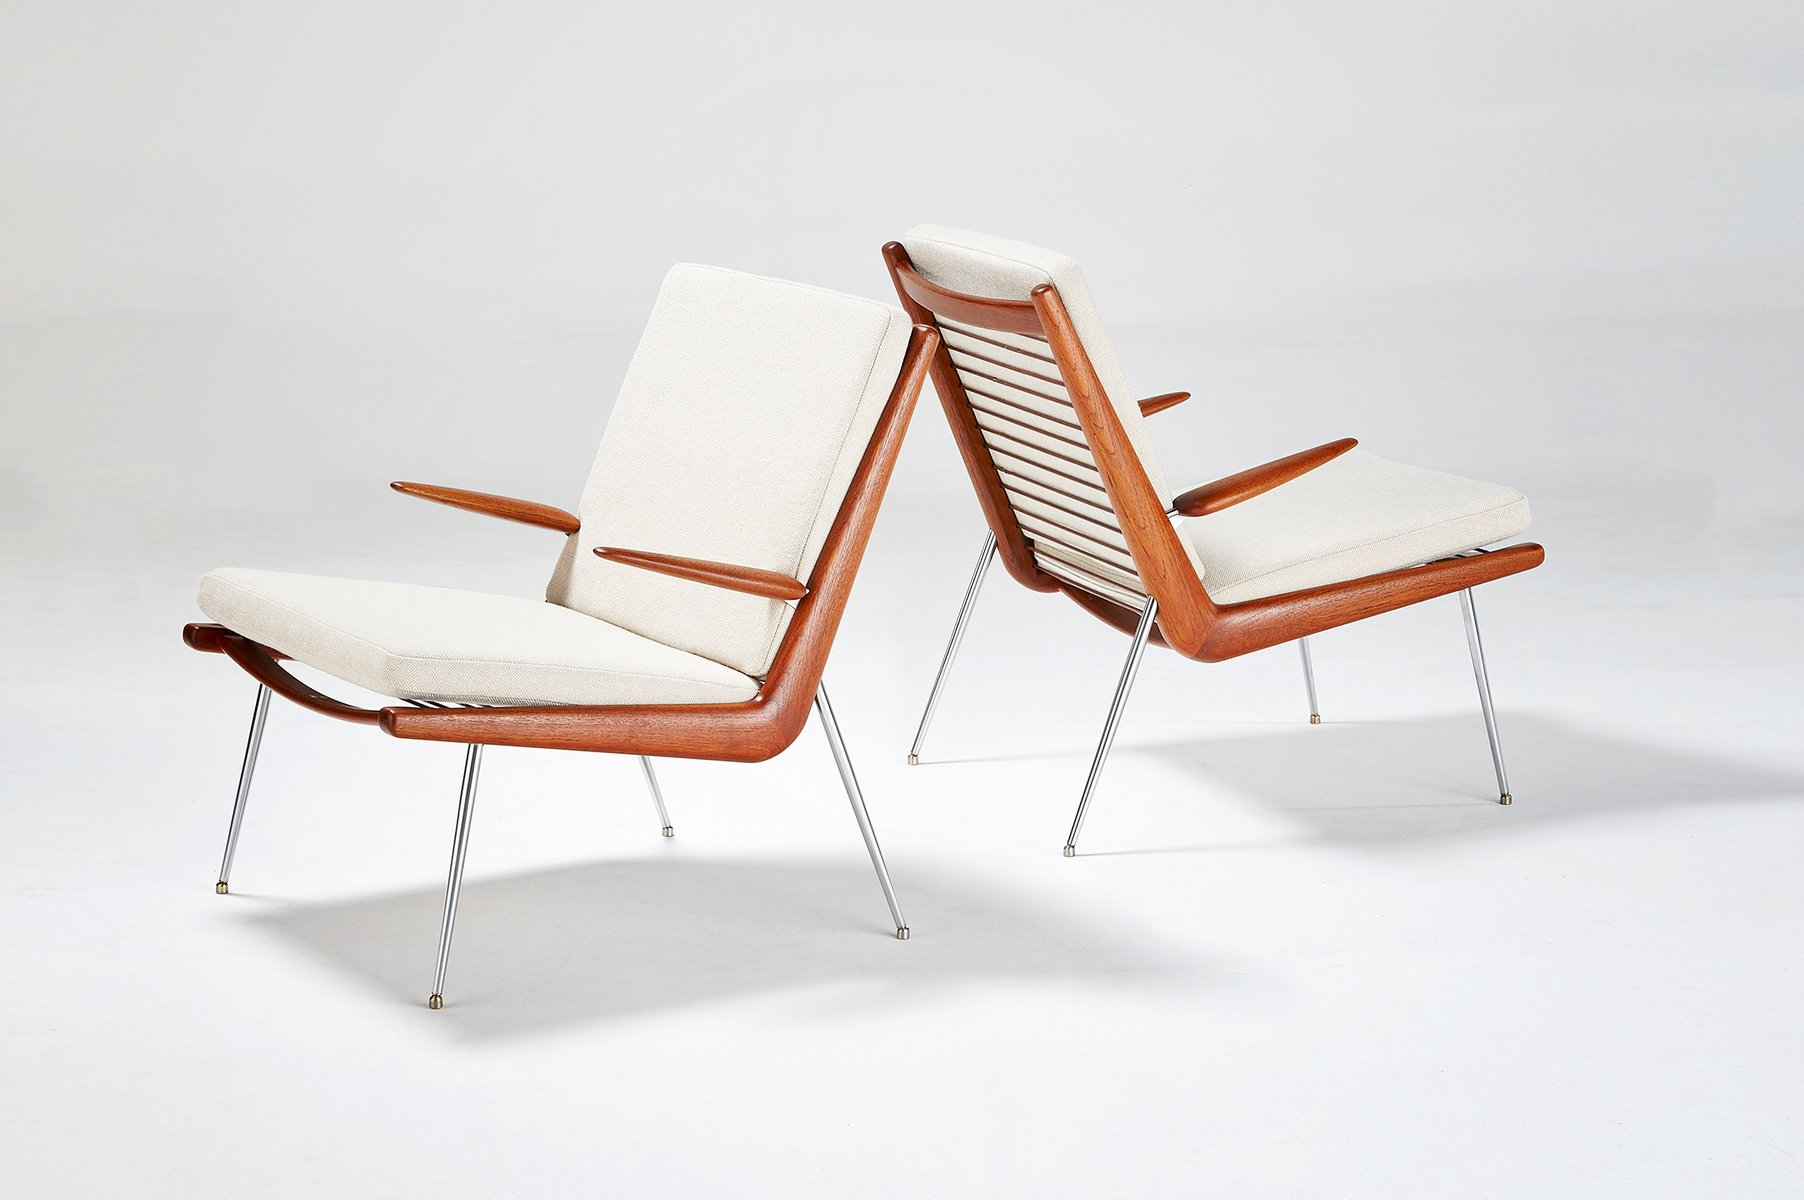 FD 135 Boomerang Chairs by Peter Hvidt and Orla Molgaard Nielsen